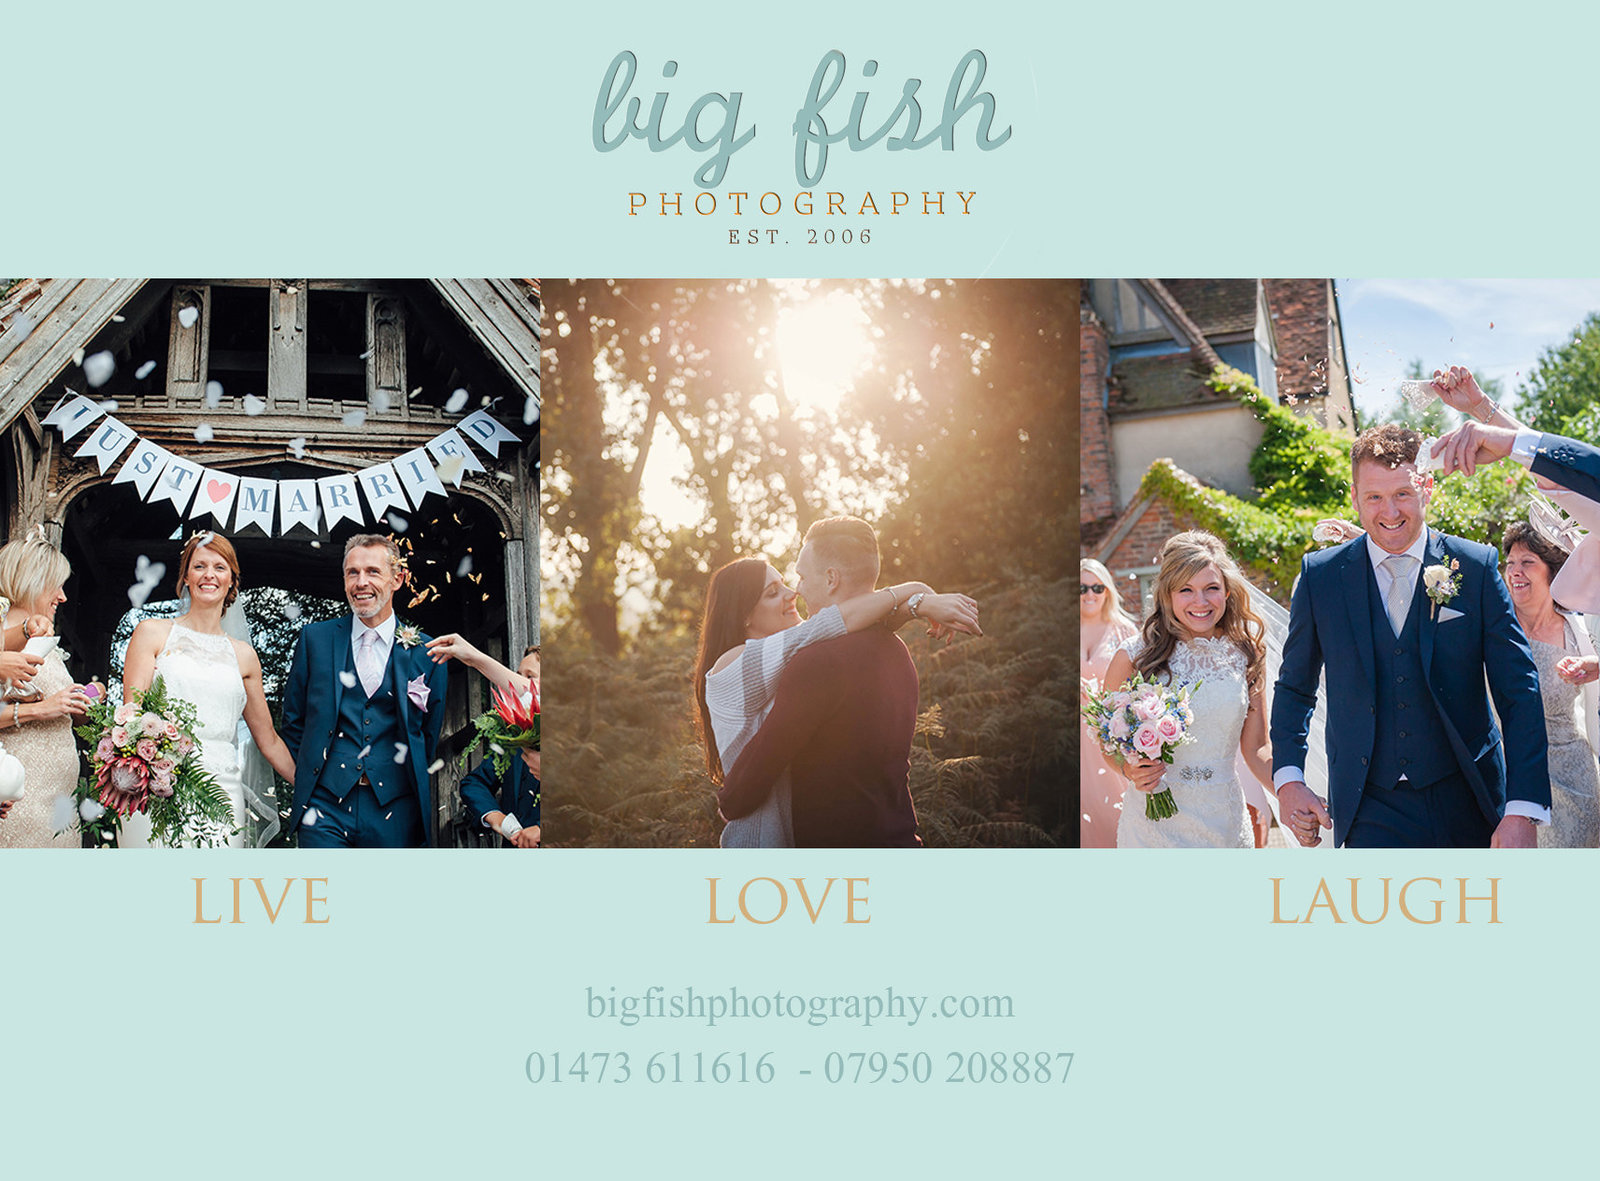 Captivating Contemporary Wedding Portrait Commercial Photography Big Fish Photography